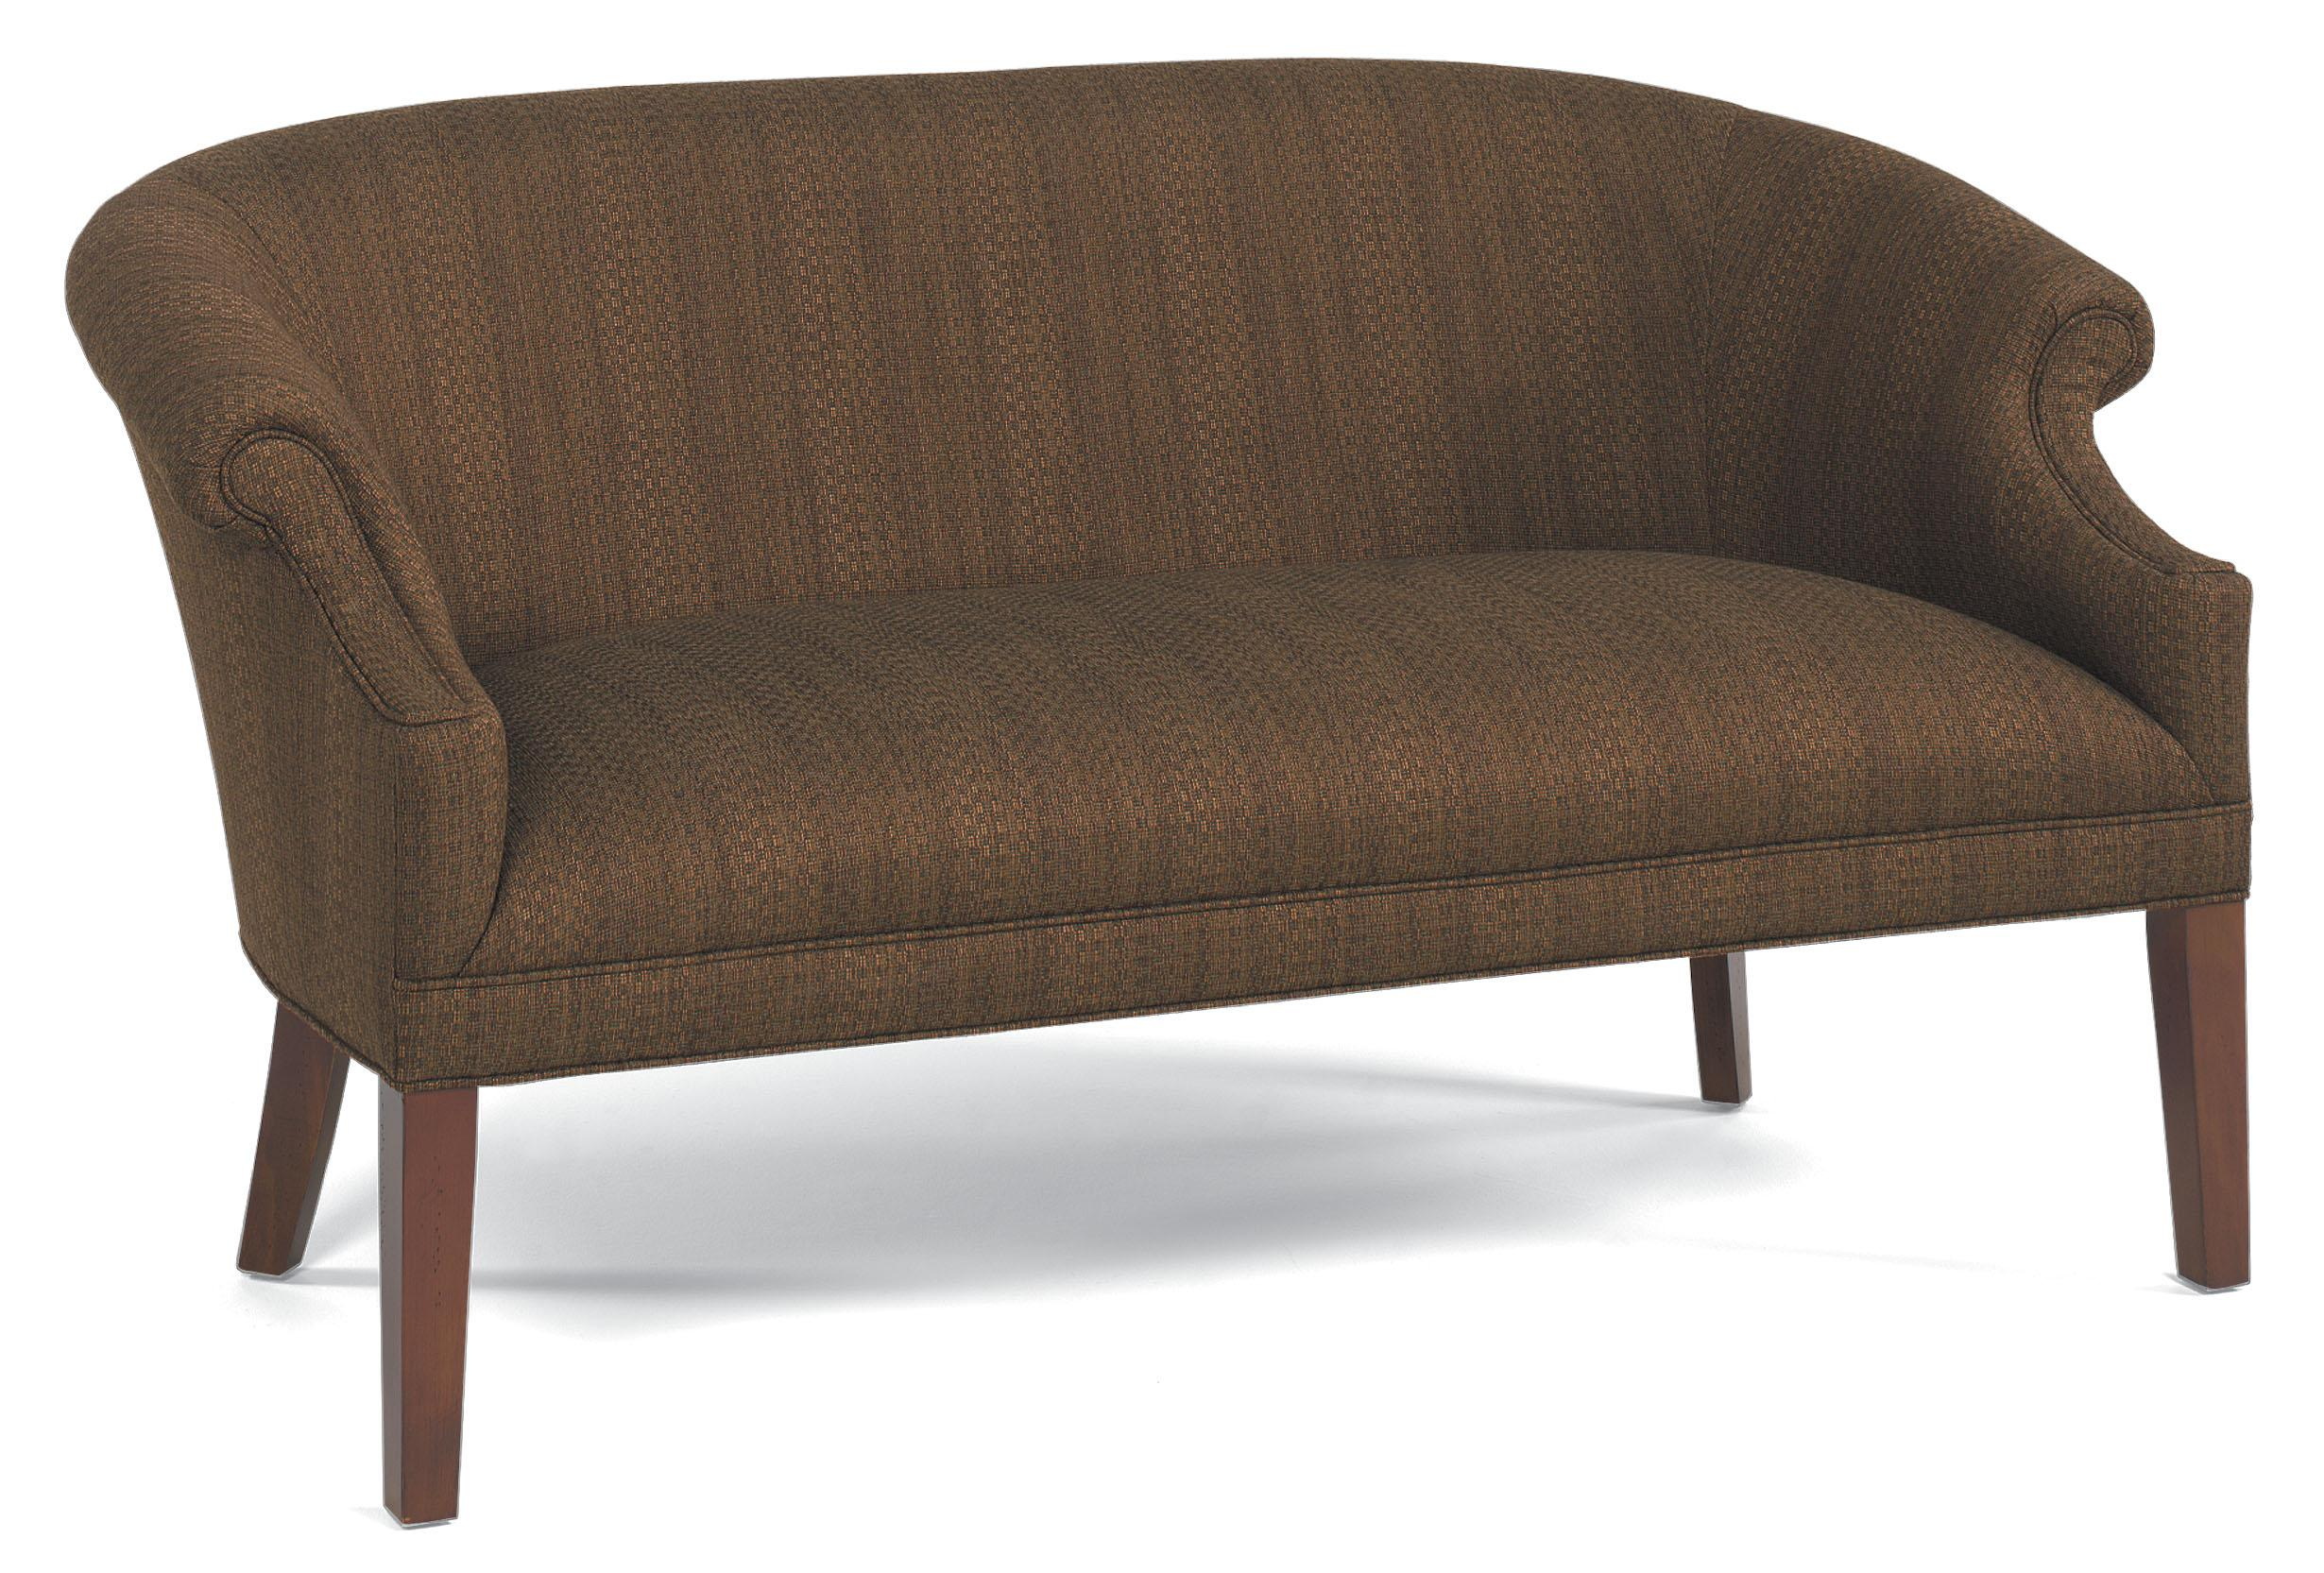 Sofa Legs Tall Fairfield Sofa Accents Stationary Sofa With Tall Wood Legs